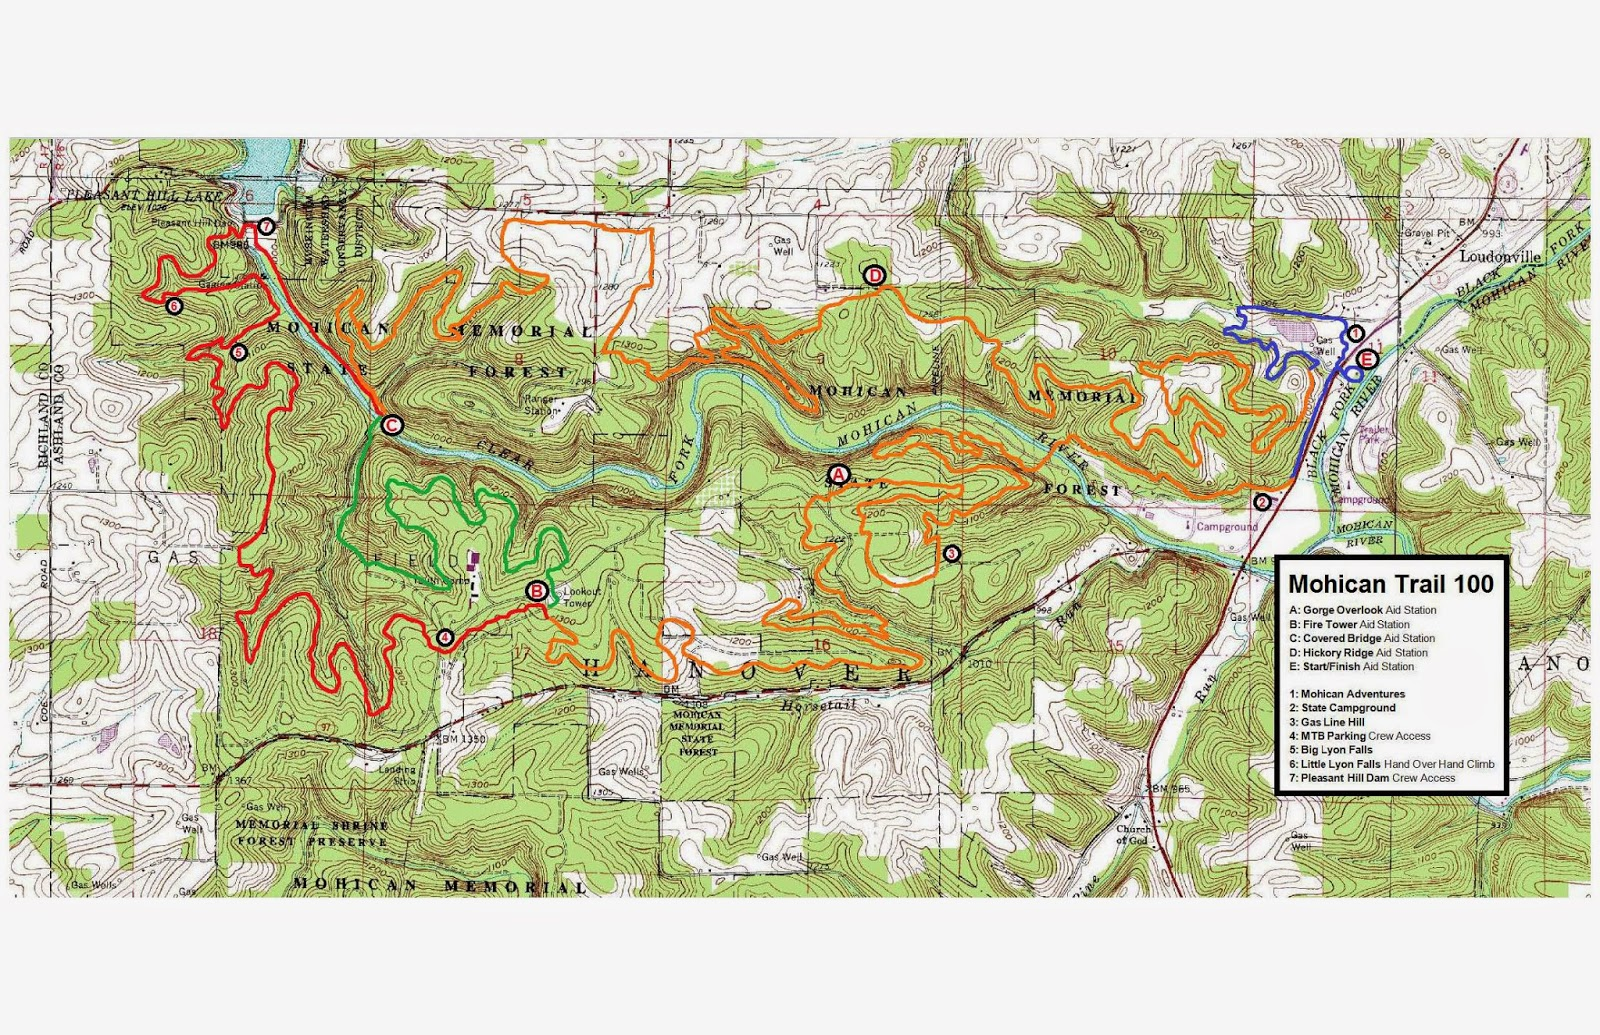 map of the course start from the letter e and work clockwise the longer loop extends further to the left of the map